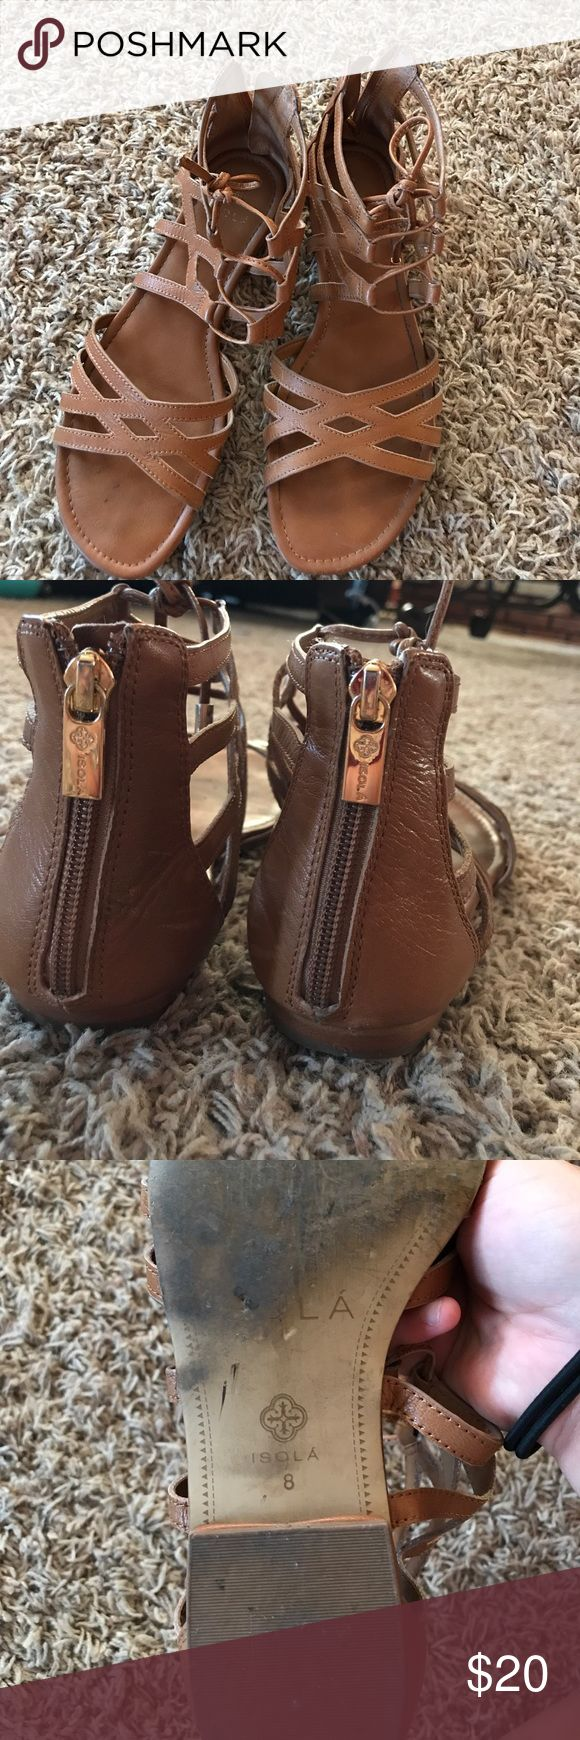 SANDALS FOR SALE! WORN A COUPLE TIMES! Size 8 gladiator zip up sandals. Loved them. They were a little too big on me. Worn them a couple times on special occasions last summer. Gold zipper in the back, cognac brown sandals, leather, two ties in the front top Shoes Sandals